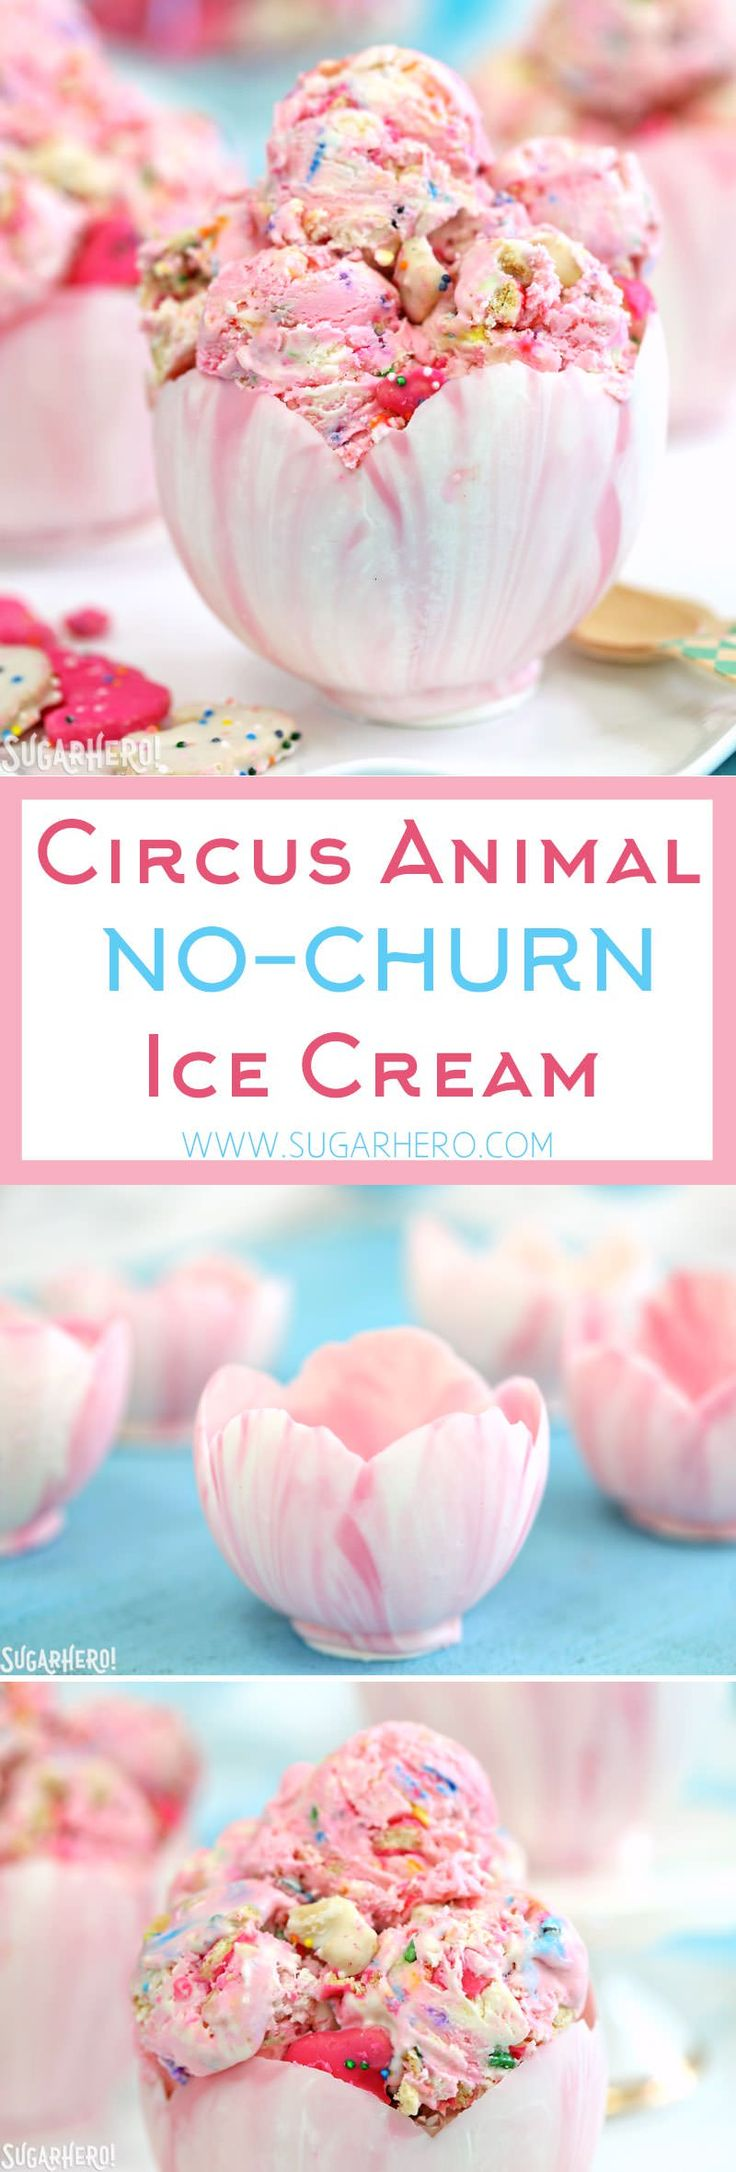 Circus Animal No-Churn Ice Cream - pink and white swirled ice cream with circus animal cookies and sprinkles! PLUS edible white chocolate bowls! | From SugarHero.com